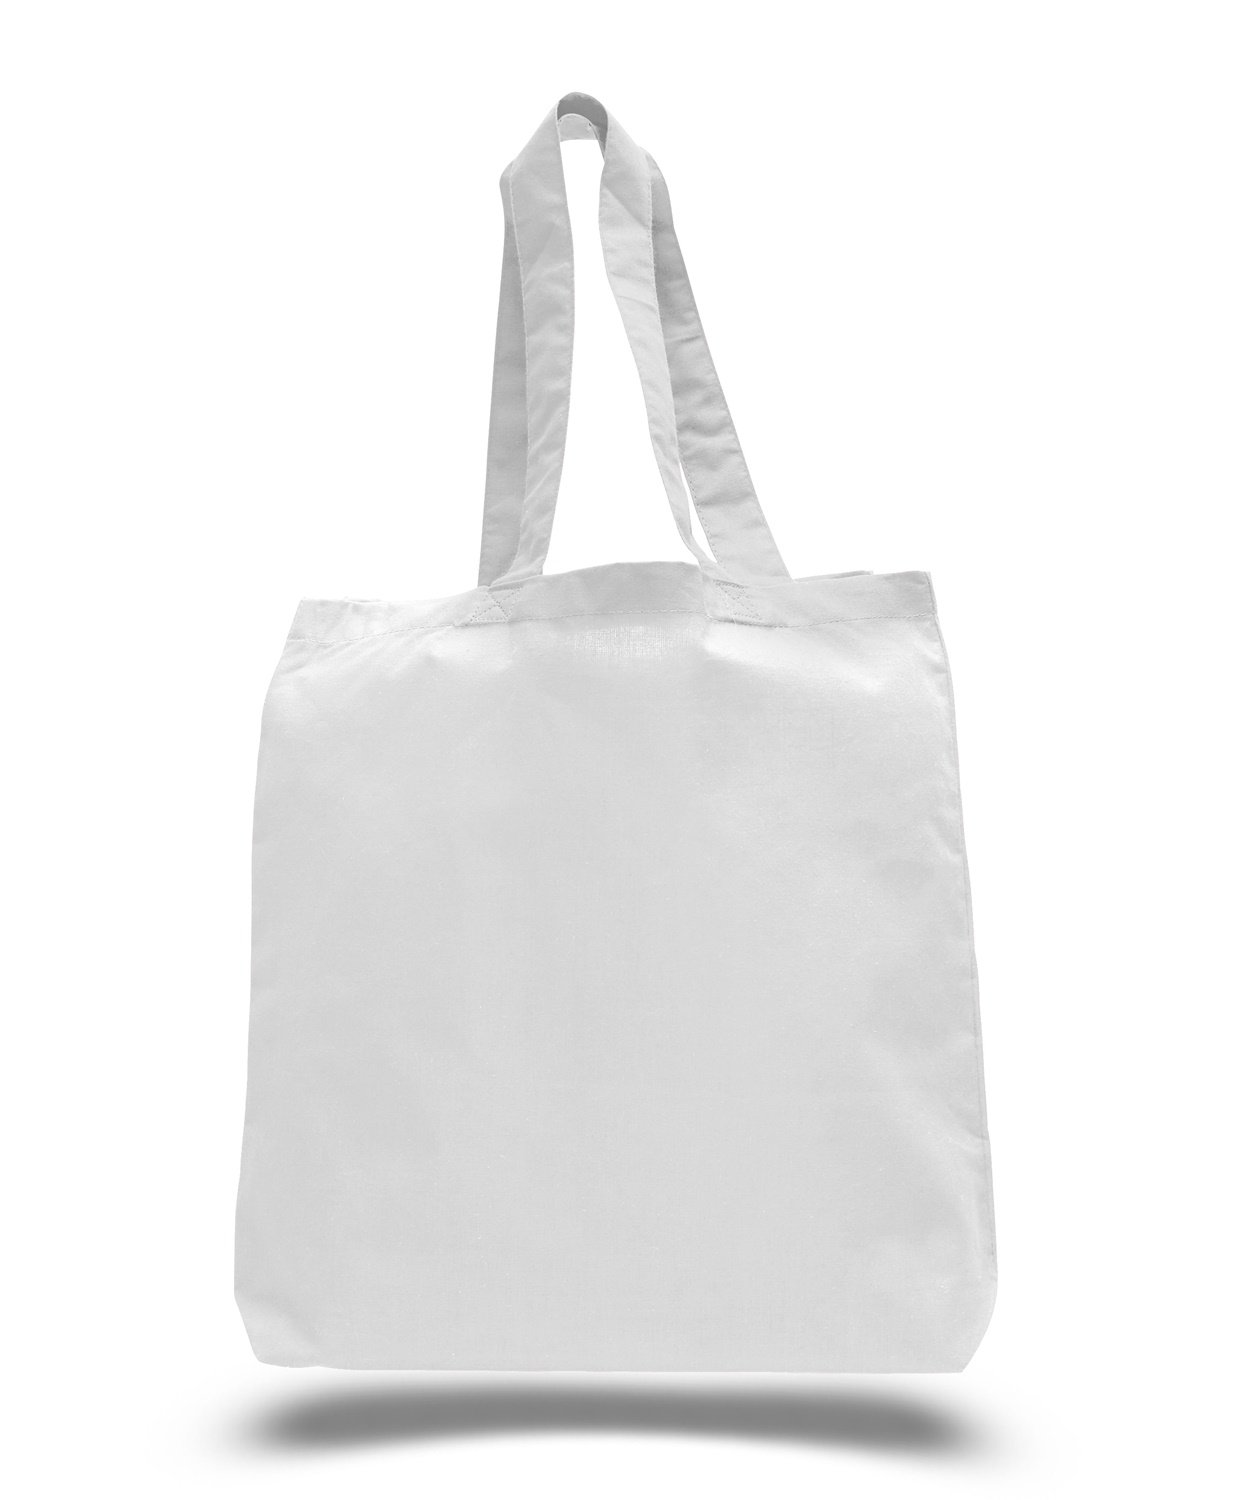 (White)(3 Pack) Set of 3 Cotton Tote Bags Wholesale with Bottom Gusset (White) B011D5EZRO ホワイト ホワイト